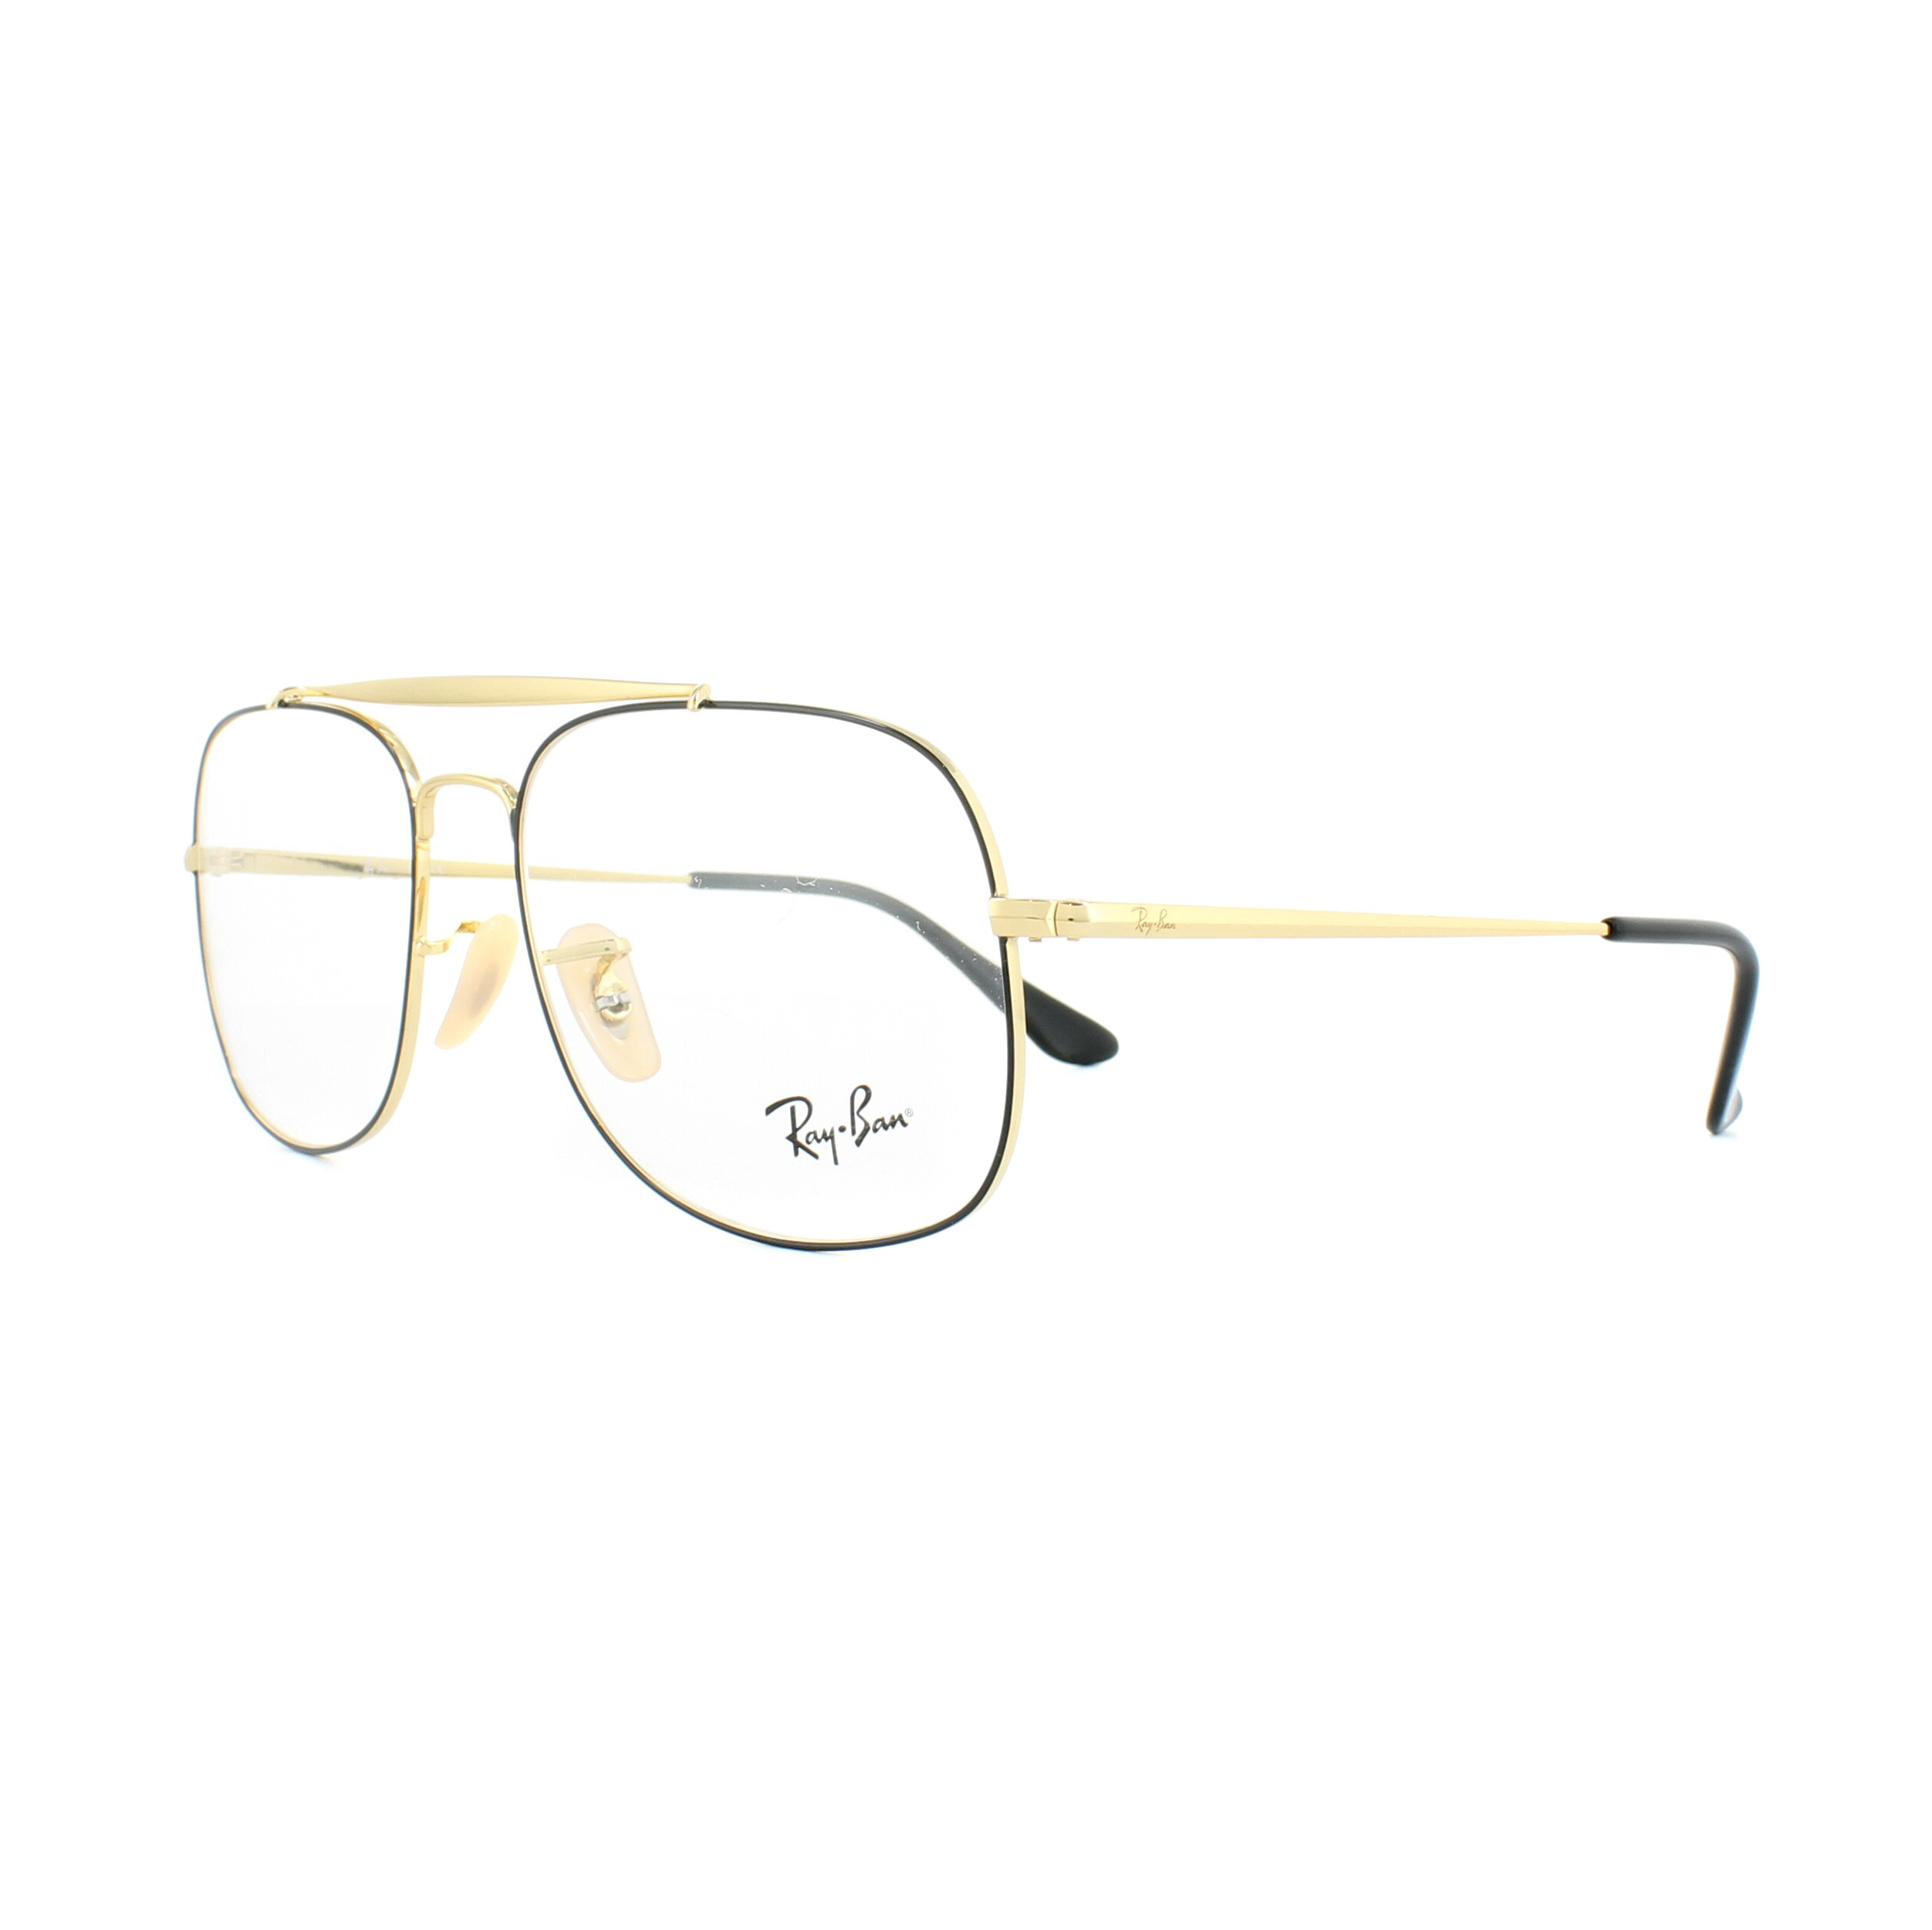 35d19187e82 Sentinel Ray-Ban Glasses Frames 6389 The General 2946 Black Gold 57mm Mens